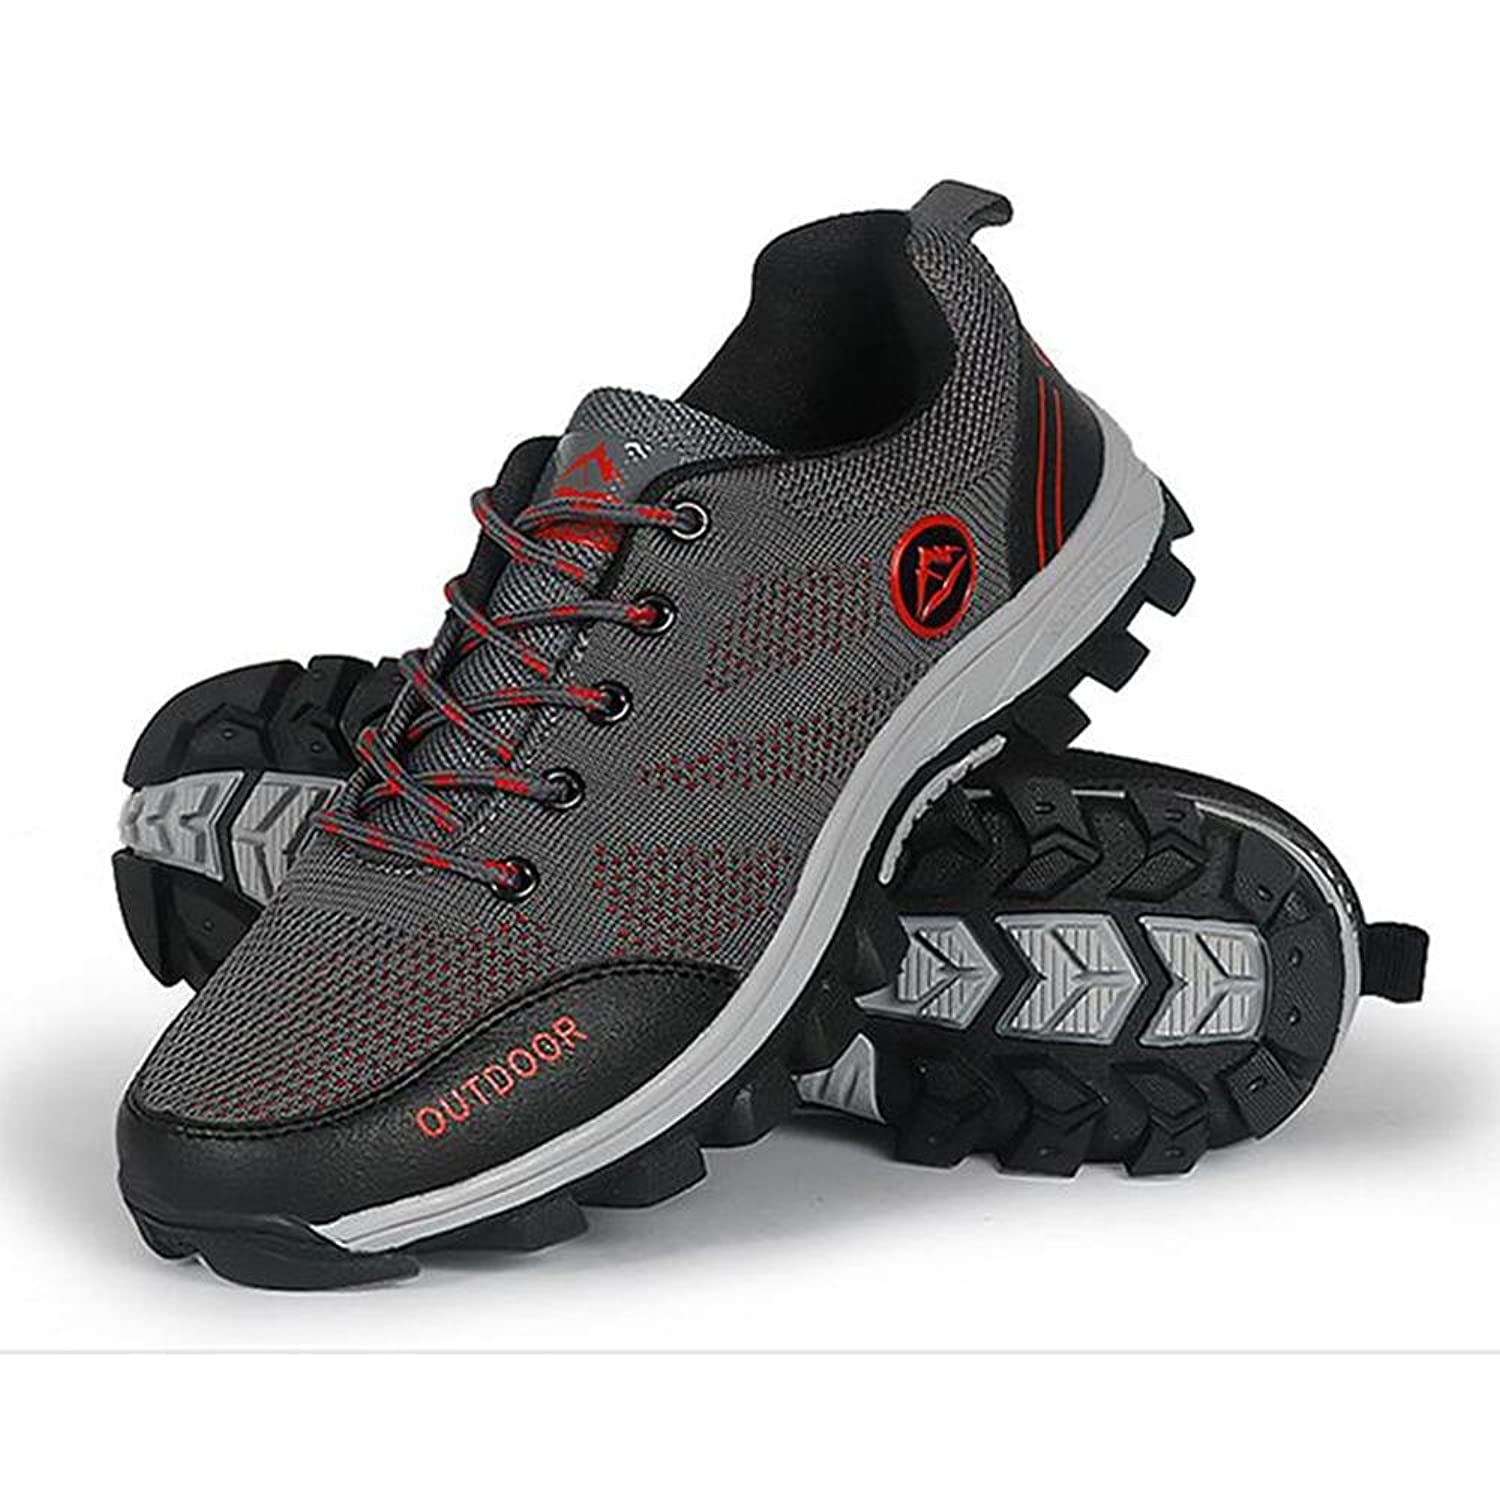 Men's hiking shoes outdoor sports casual shoes mesh breathable non-slip  wear shoes walking shoes, grey, 41: Amazon.co.uk: Shoes & Bags